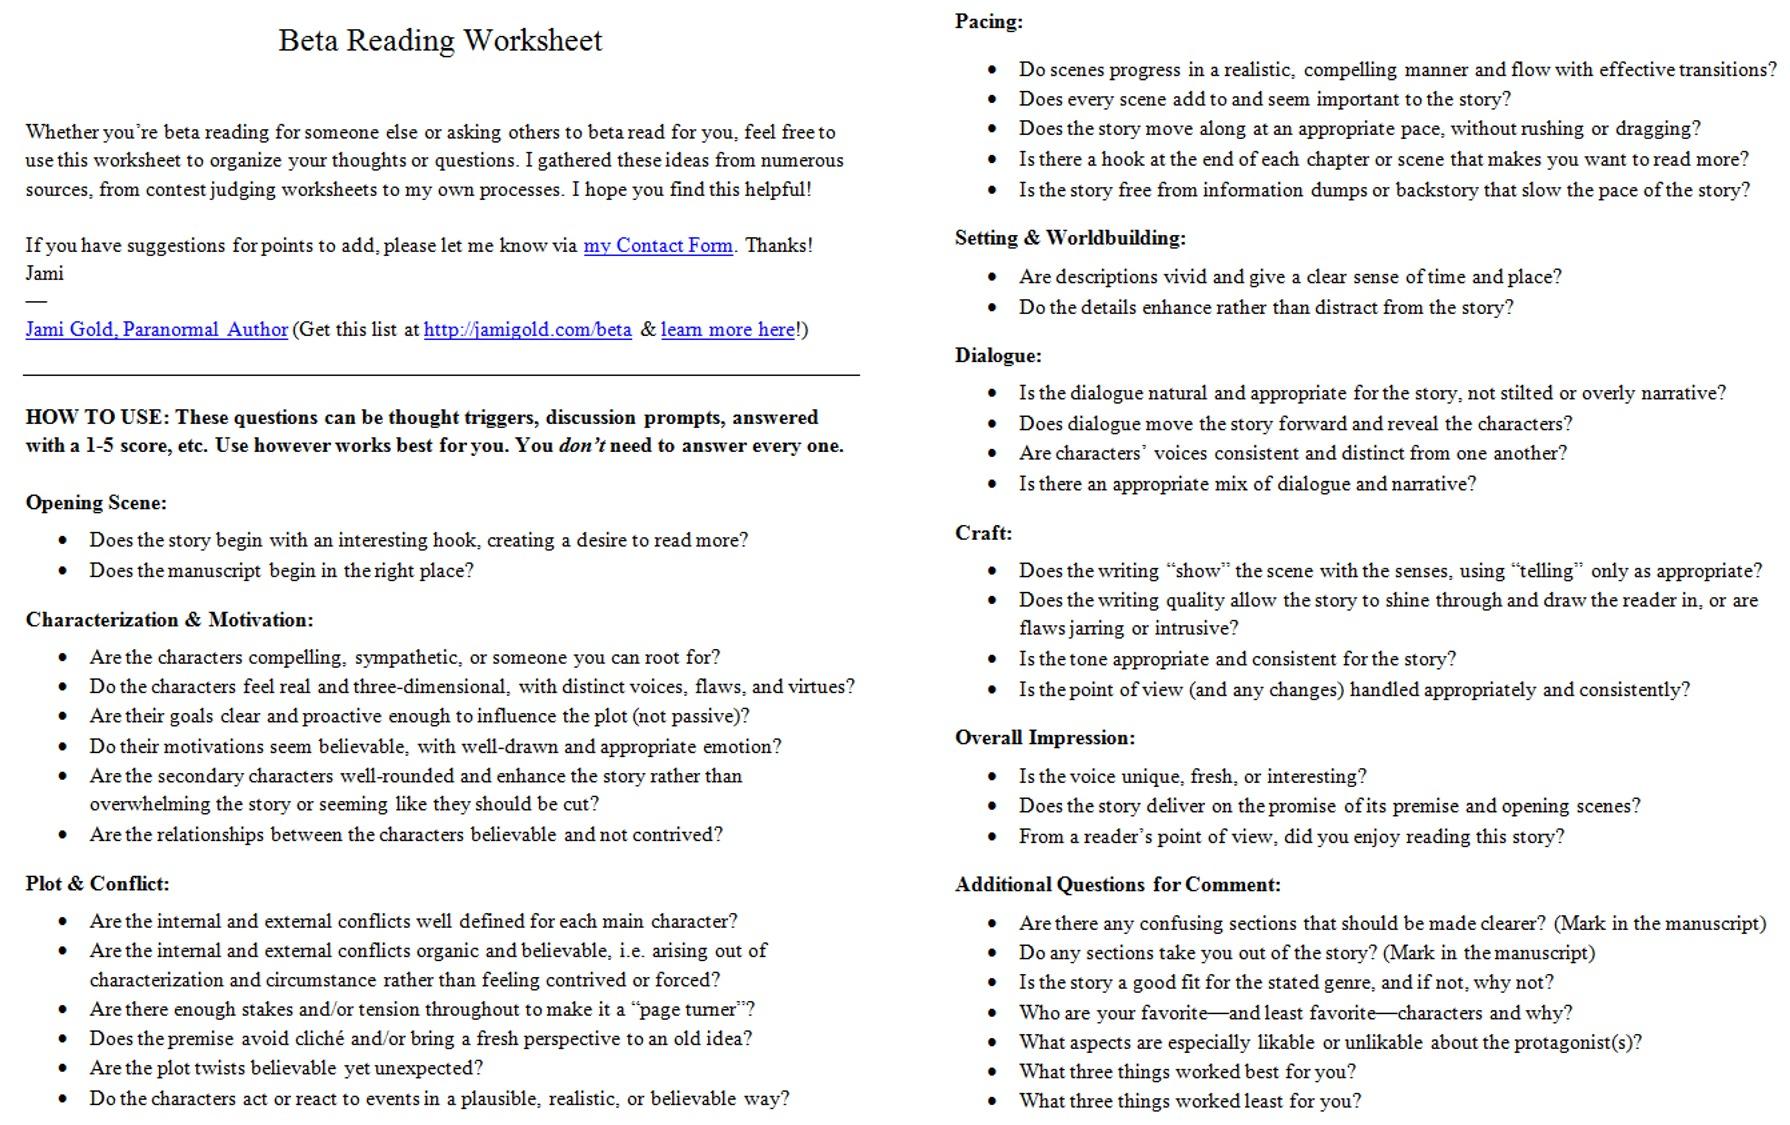 Proatmealus  Mesmerizing Worksheets For Writers  Jami Gold Paranormal Author With Heavenly Screen Shot Of The Twopage Beta Reading Worksheet With Captivating Chapter  Covalent Bonding Worksheet Answers Also Supersize Me Worksheet Answers In Addition Two Step Equation Worksheets And Organelles In Eukaryotic Cells Worksheet As Well As Graphing Logarithmic Functions Worksheet Additionally Systems Of Linear Inequalities Worksheet From Jamigoldcom With Proatmealus  Heavenly Worksheets For Writers  Jami Gold Paranormal Author With Captivating Screen Shot Of The Twopage Beta Reading Worksheet And Mesmerizing Chapter  Covalent Bonding Worksheet Answers Also Supersize Me Worksheet Answers In Addition Two Step Equation Worksheets From Jamigoldcom